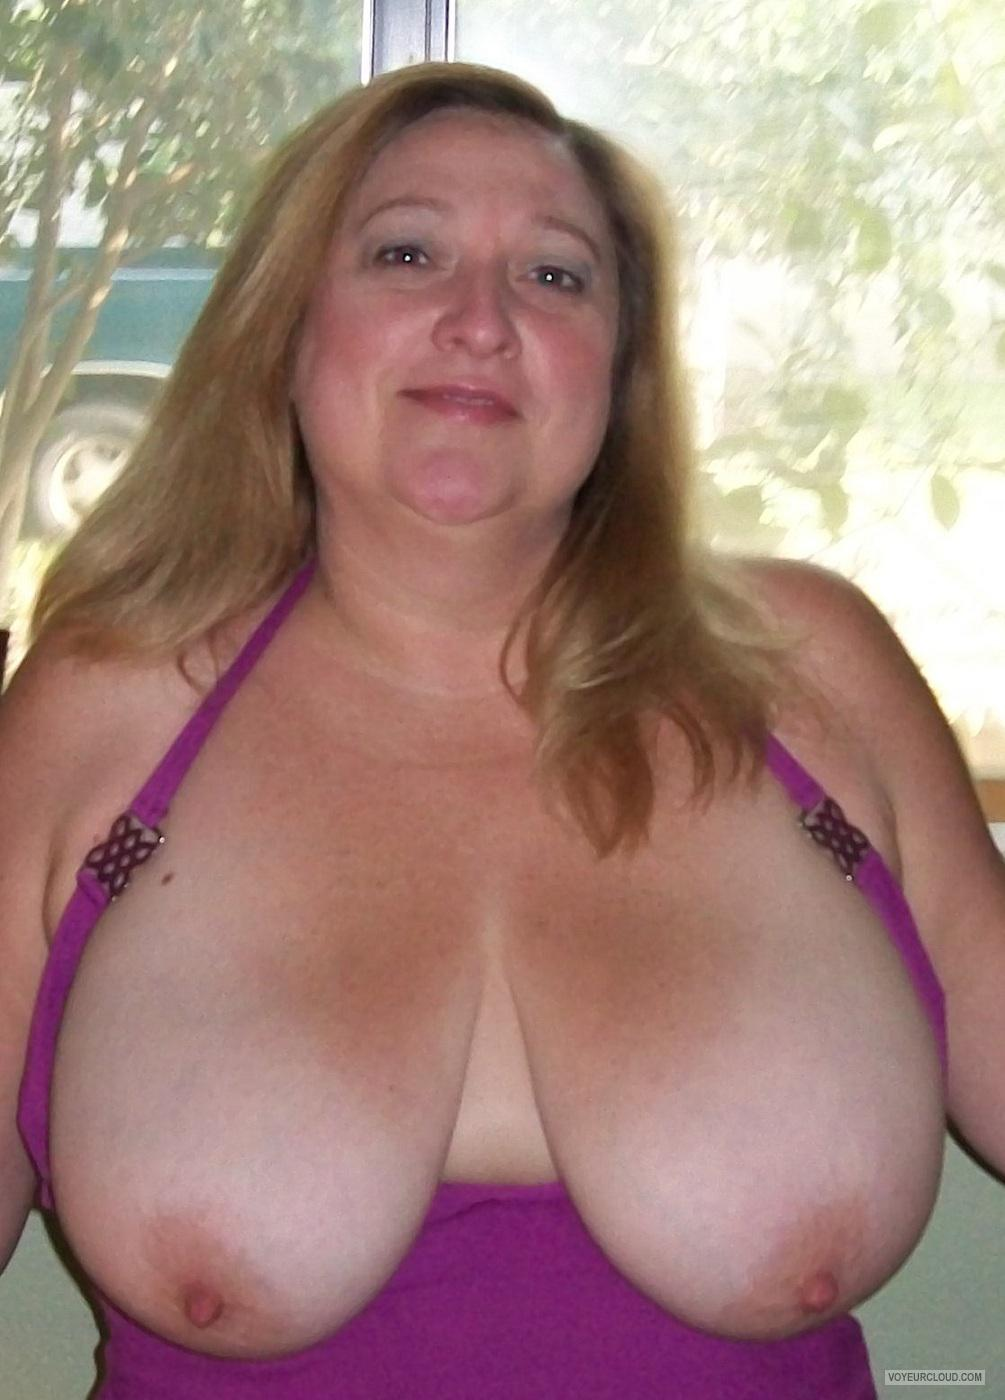 My Extremely Big Tits - Topless KTX from United States Tit Flash ...